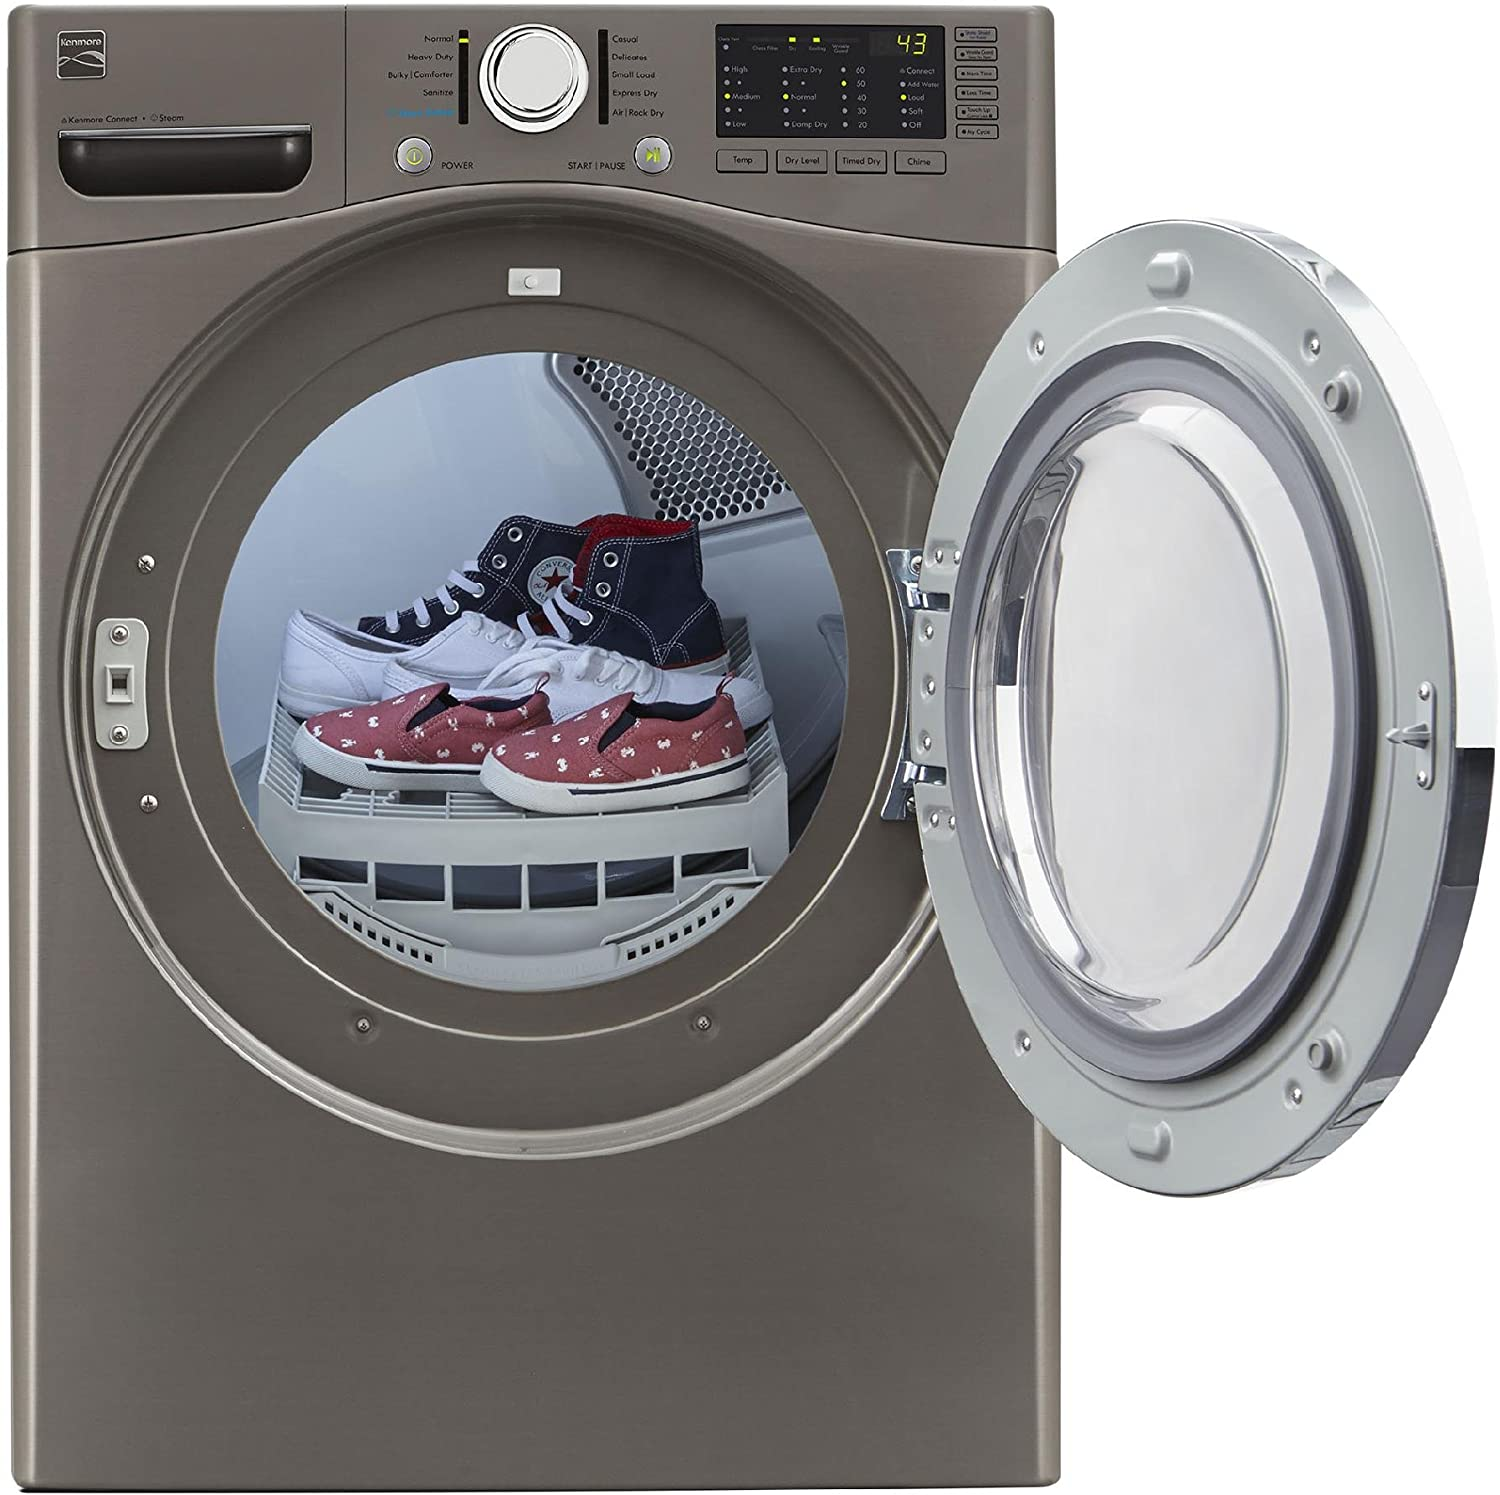 ft Compatible Alexa Dash cu and Includes Delivery and Hookup Kenmore 81783 Metallic Elite Silver 7.4 Cubic Feet Smart Electric Dryer with Accela Steam